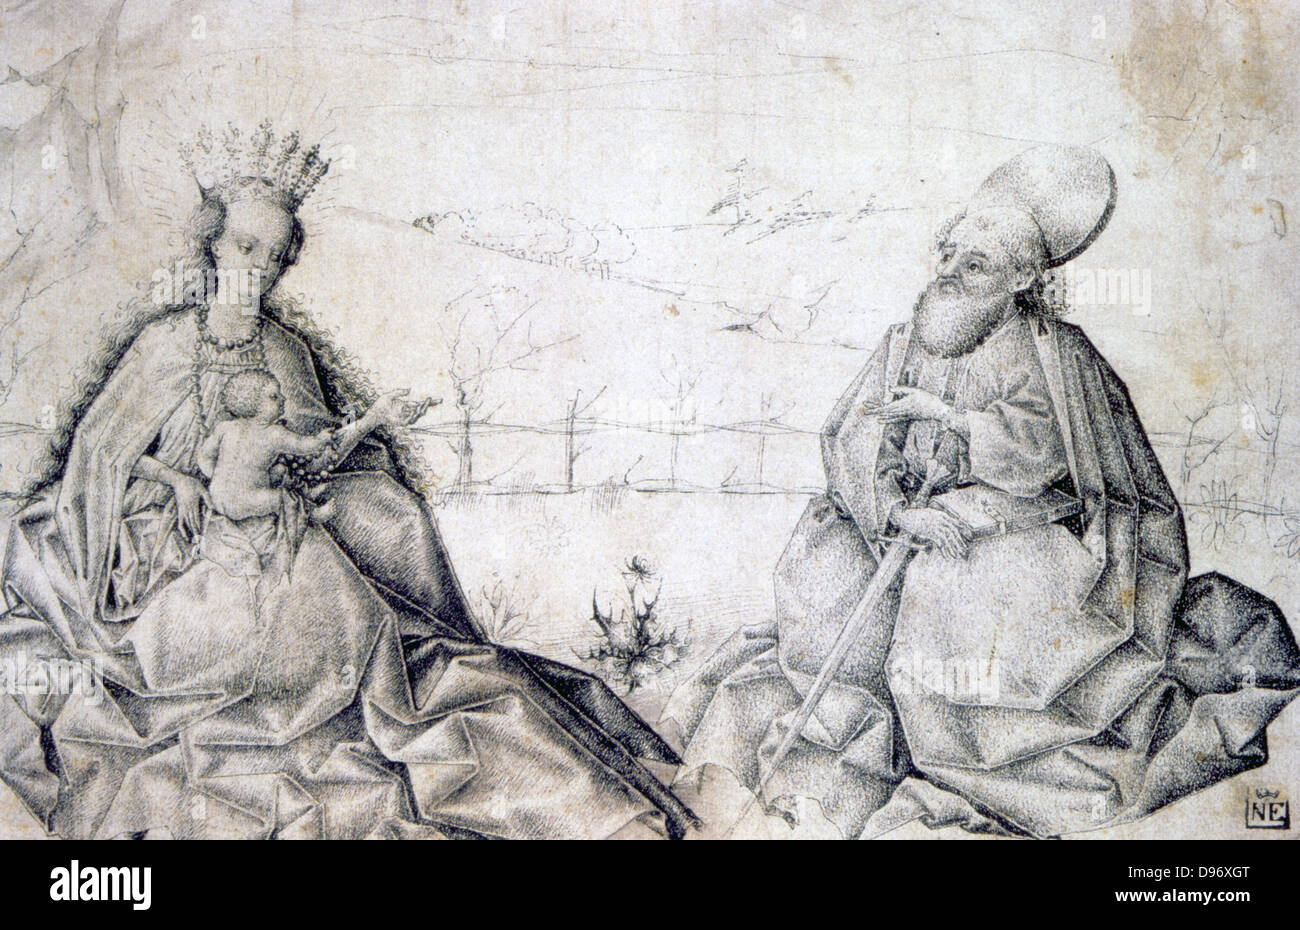 Virgin and Child with St Paul'. Swiss Master c1450. Pen, black ink and grey wash. - Stock Image